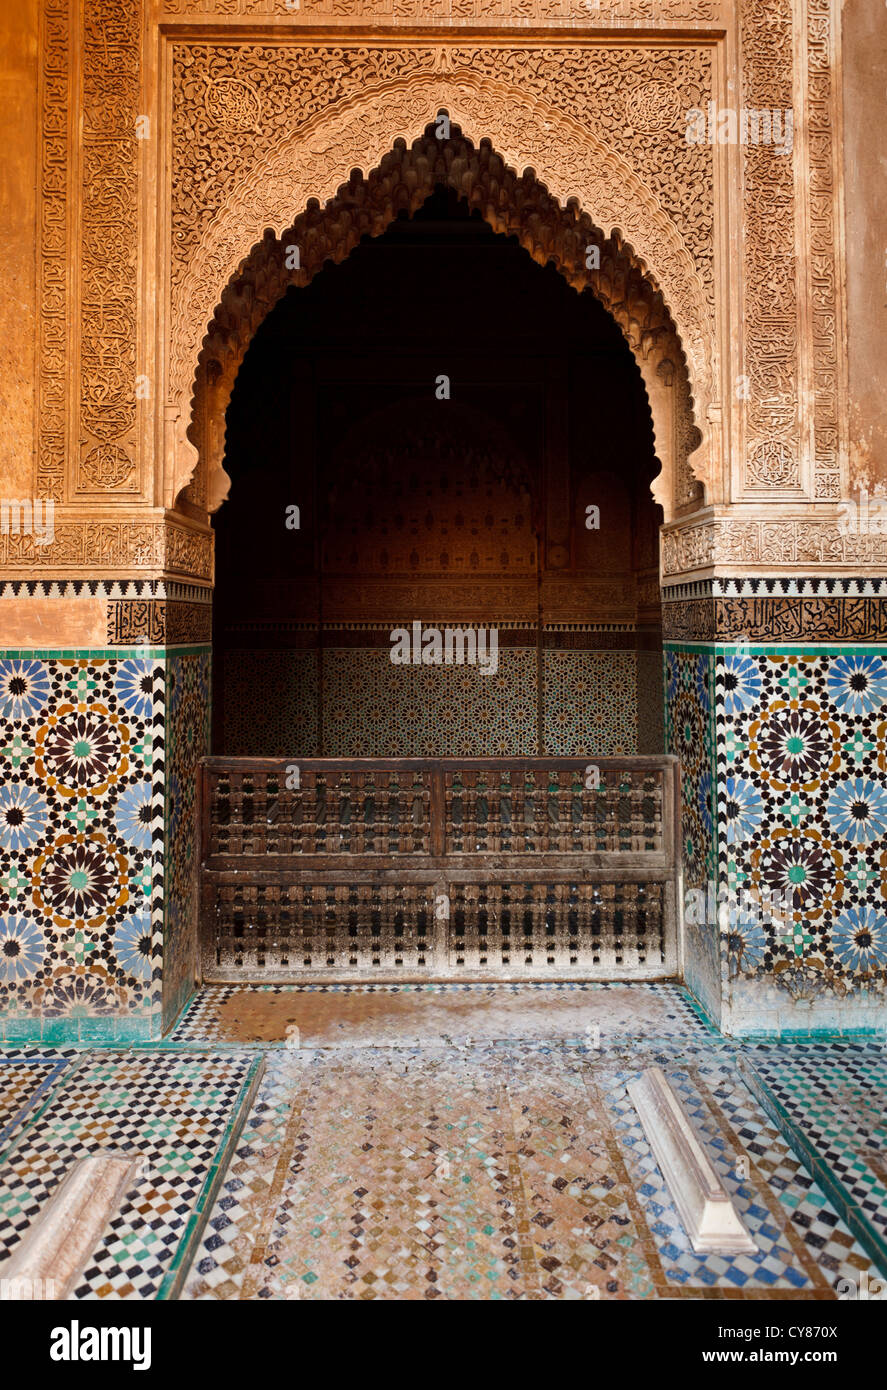 Detail of an ornate turquoise and blue mosaic tile and stone alcove inside the courtyard of a mosque in Marrakesh, Stock Photo